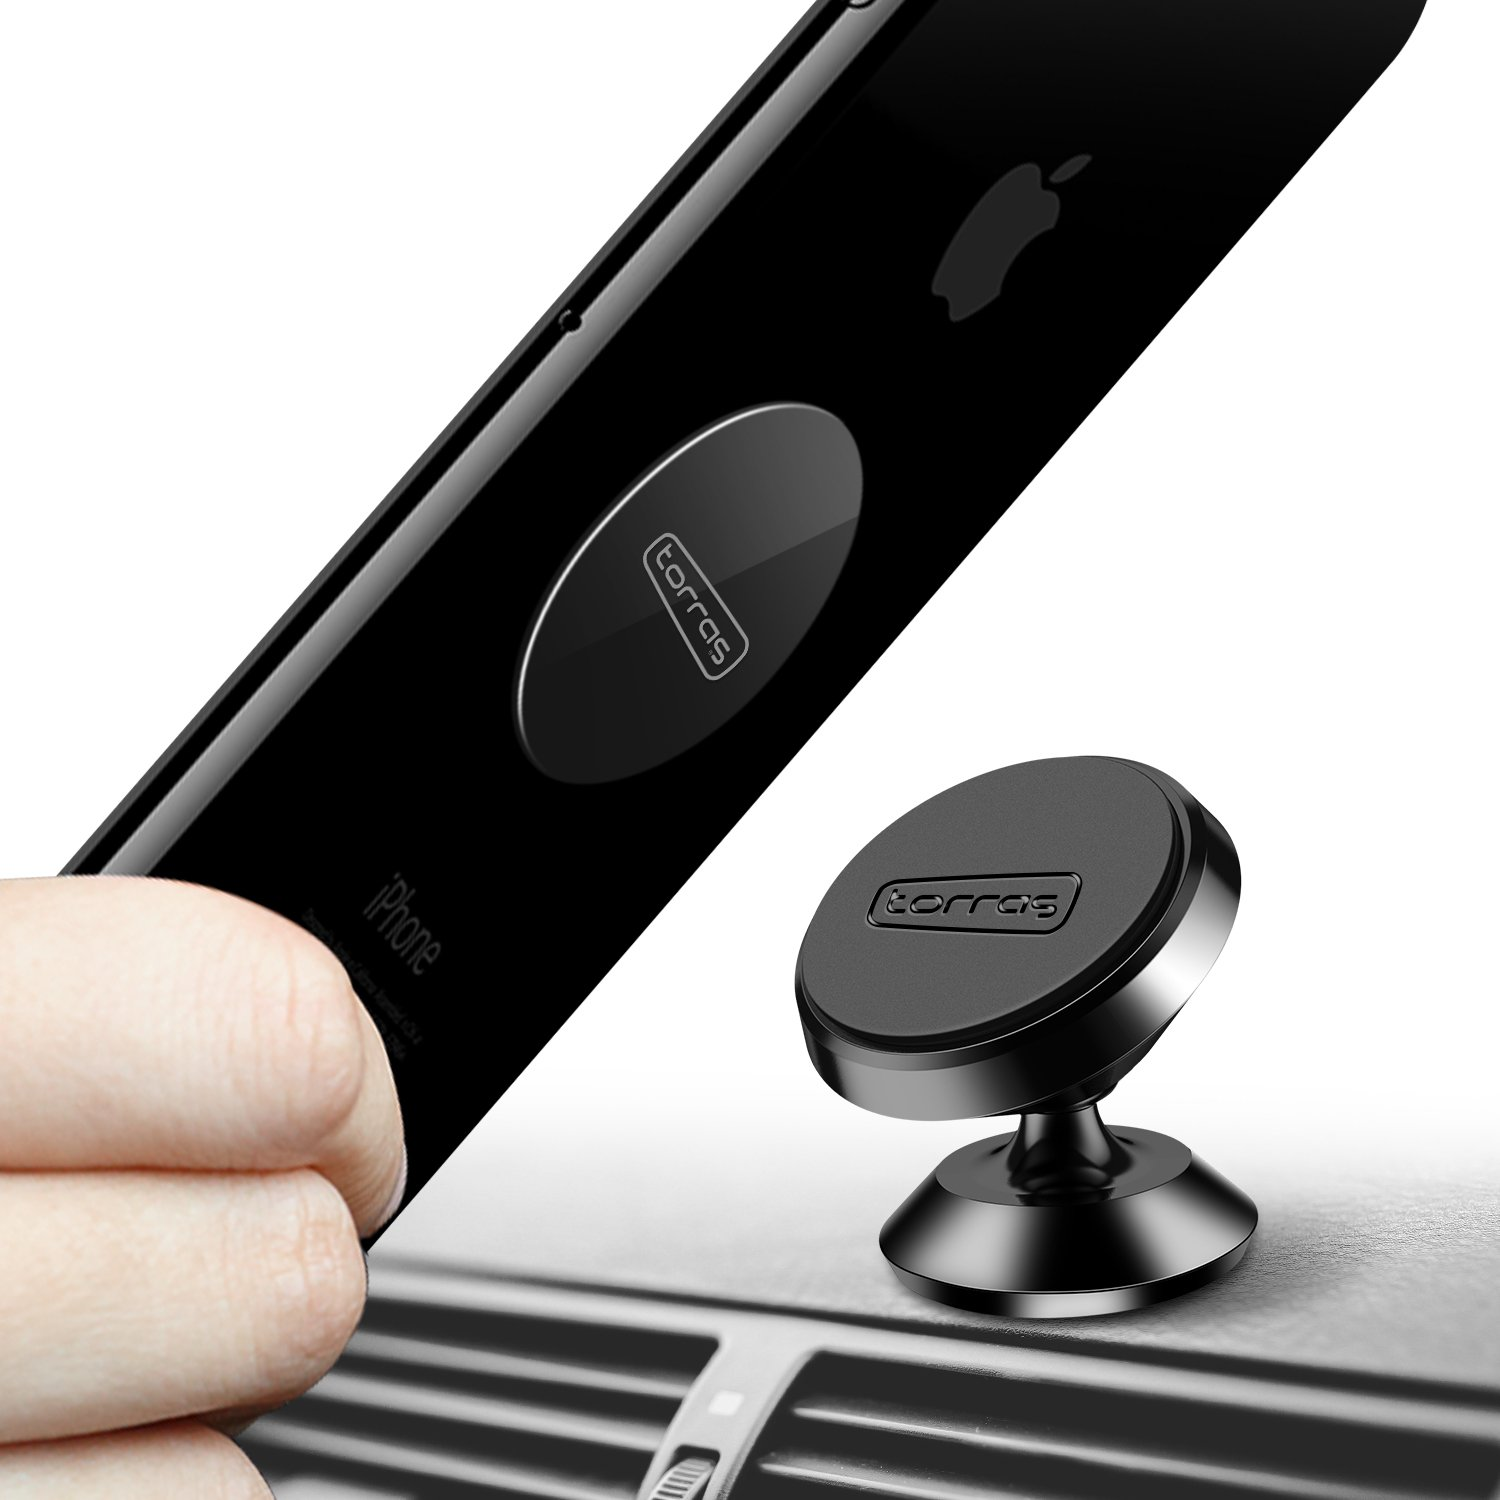 TORRAS Magnetic Car Mount, 360° Rotation Car Phone Holder for Dashboard Cell Phone Cradle Mount Compatible with iPhone Xs/Xs Max/XR/X / 8/7 Samsung Galaxy Note 9 / S9 / S9+ Plus / S8 and More